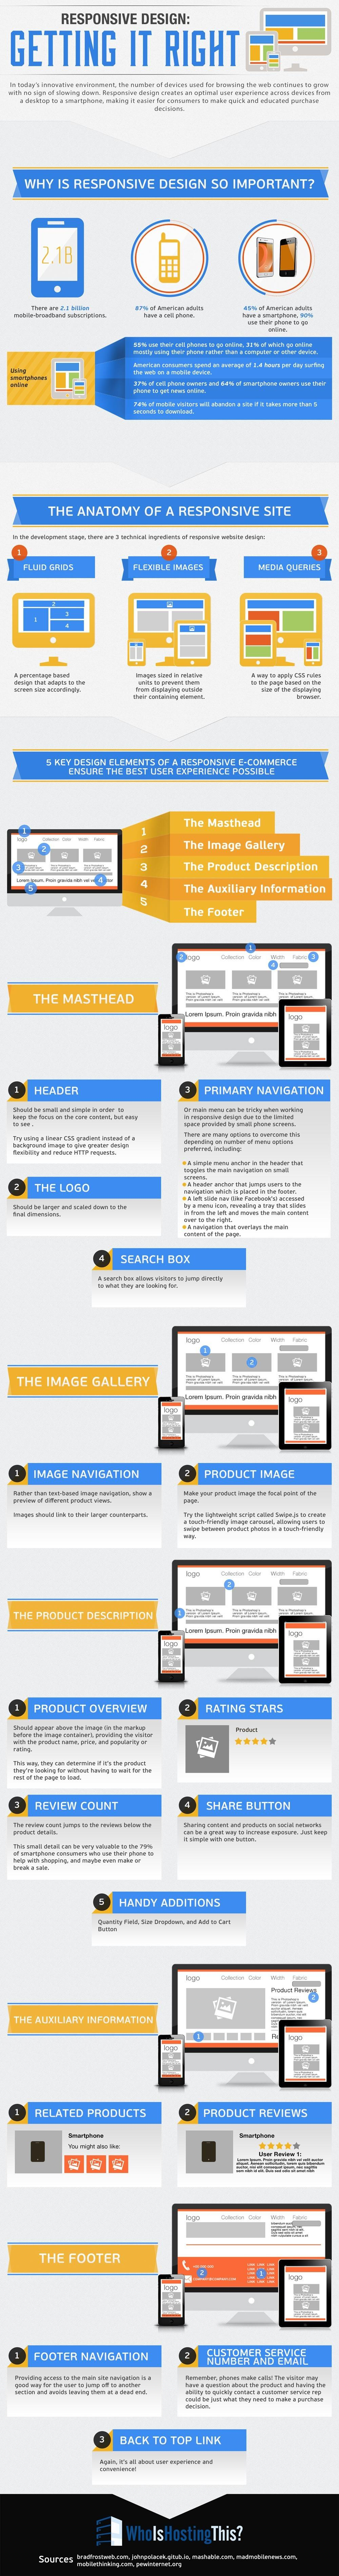 Responsive Design - Getting It Right